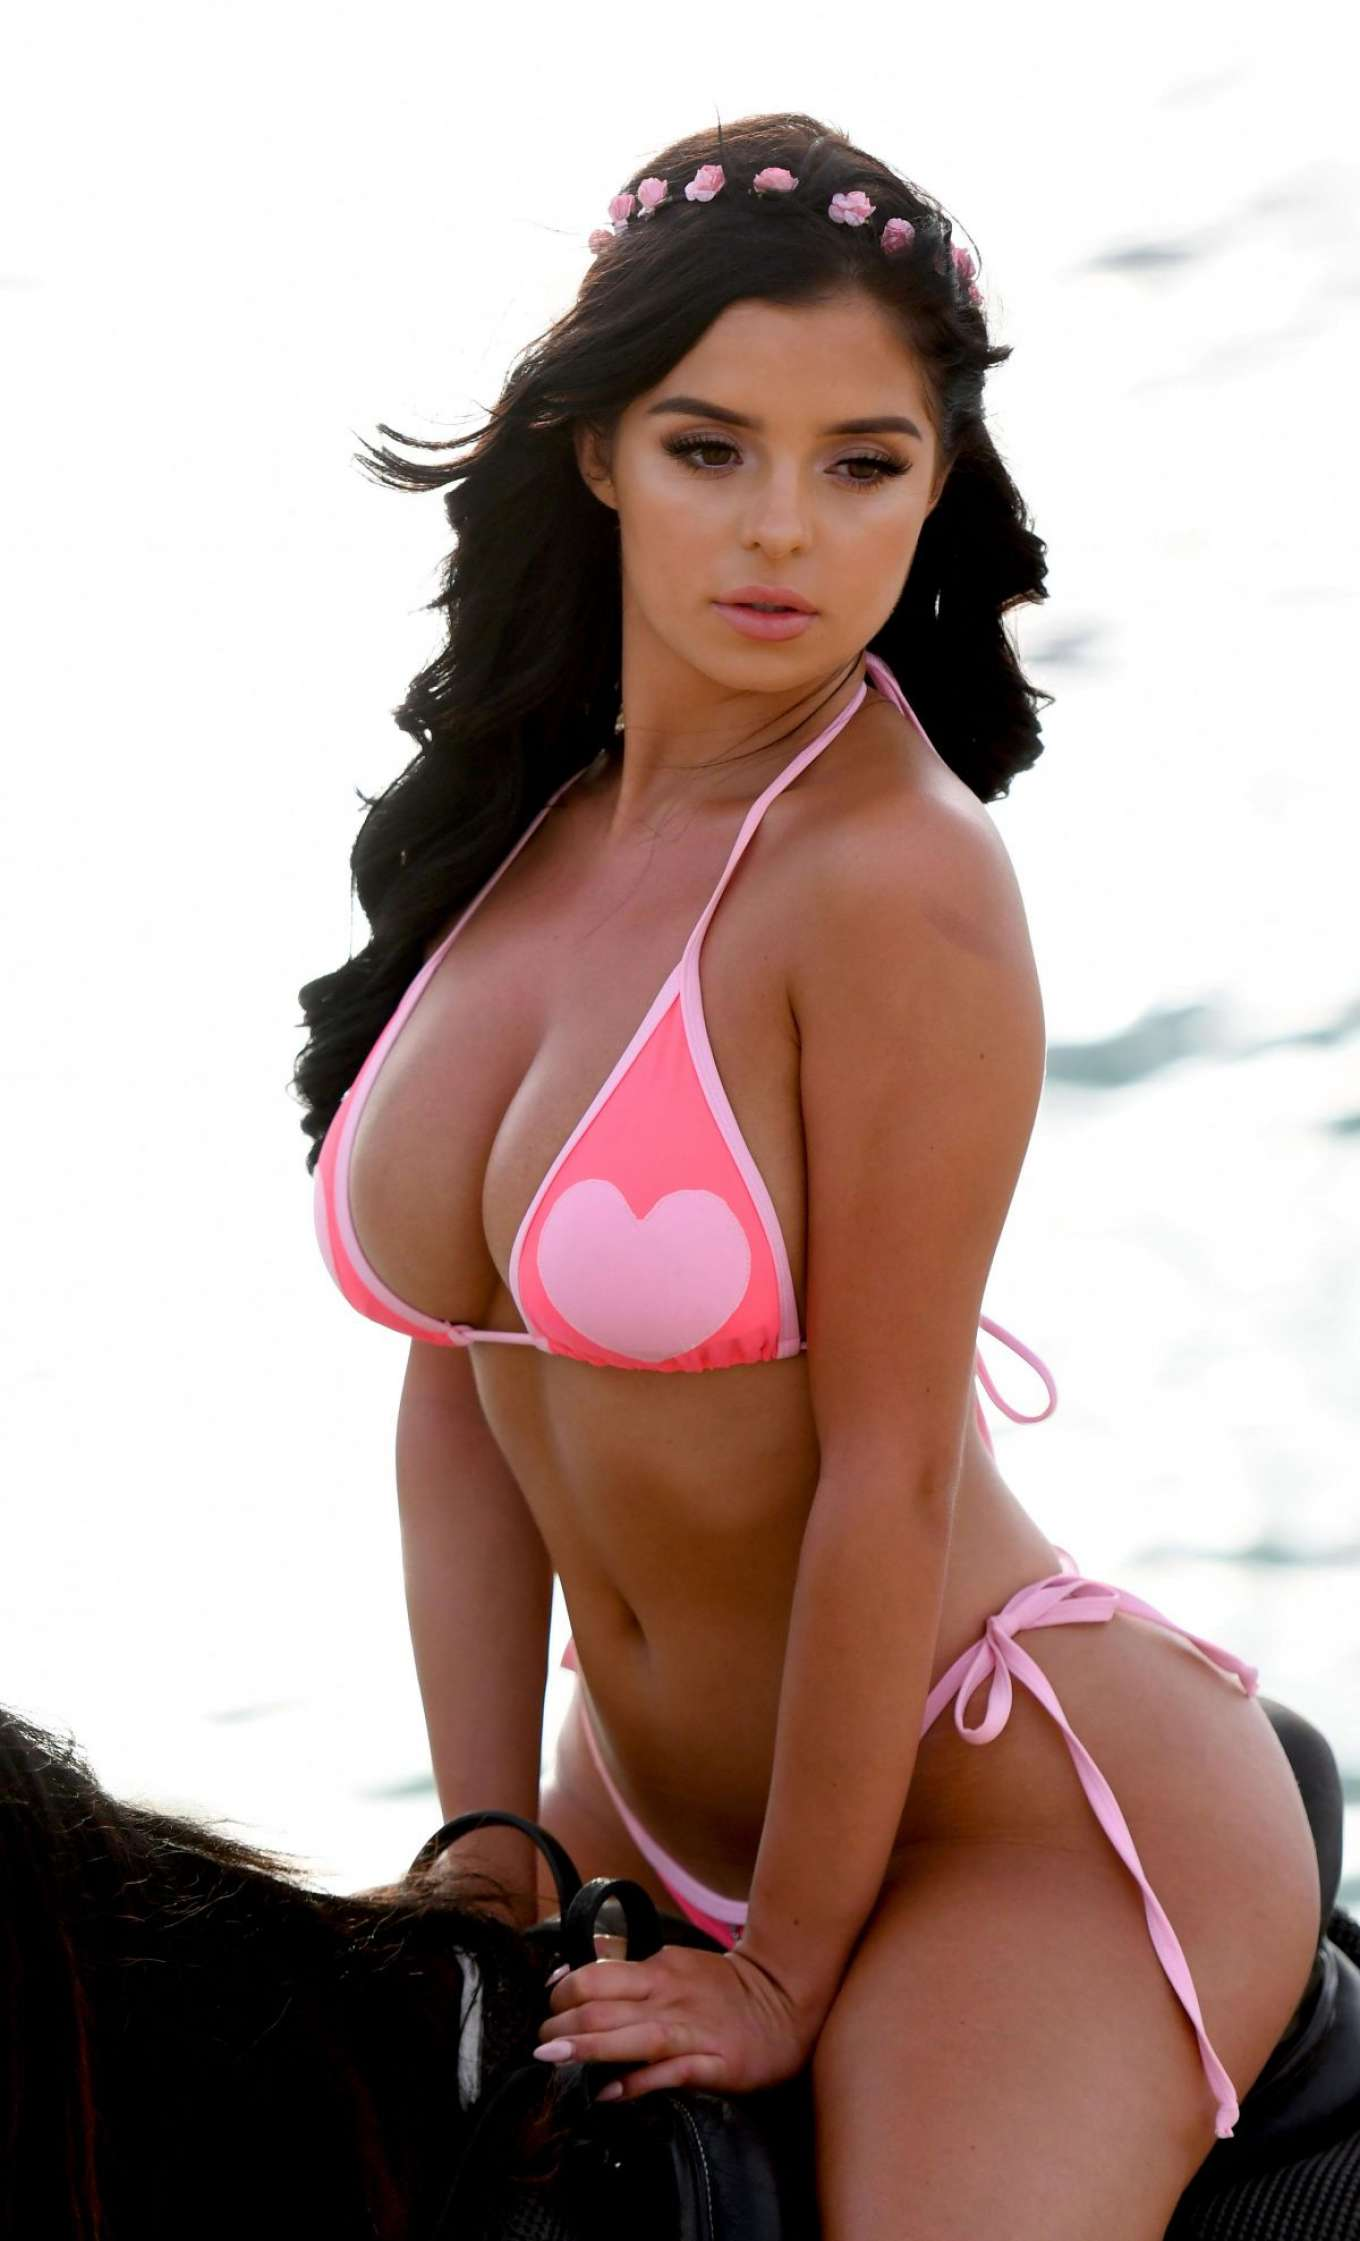 Demi Rose in Pink Bikini at a Beach in Cape Verde Pic 1 of 35